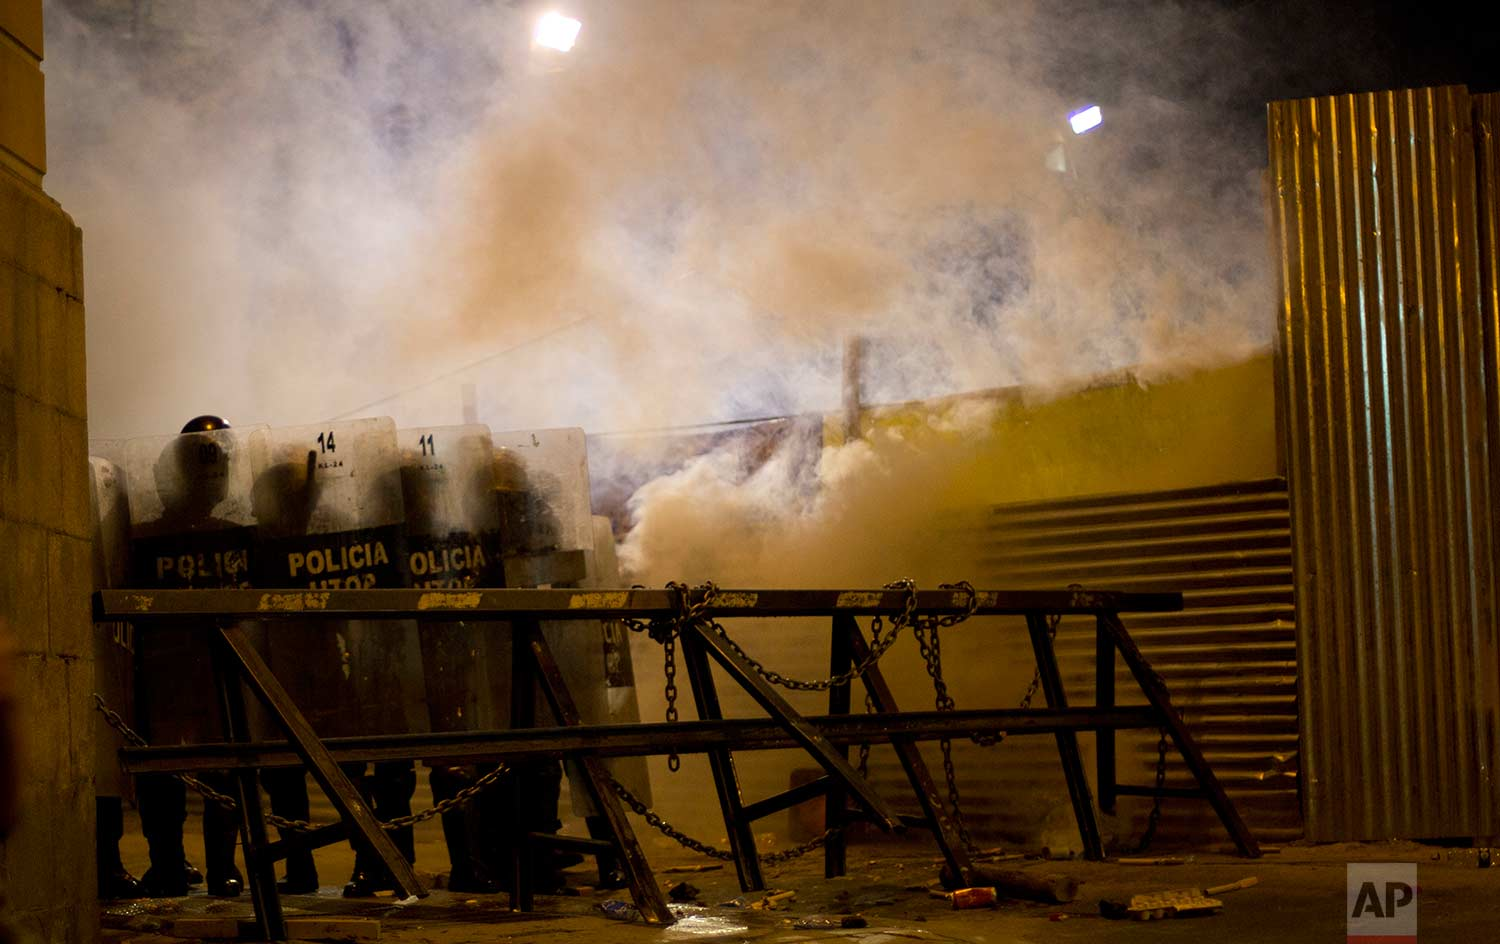 In this Friday, Dec. 15, 2017 photo, police block protesters from reaching the National Palace during clashes with students protesting in solidarity with striking doctors in La Paz, Bolivia. (AP Photo/Juan Karita)